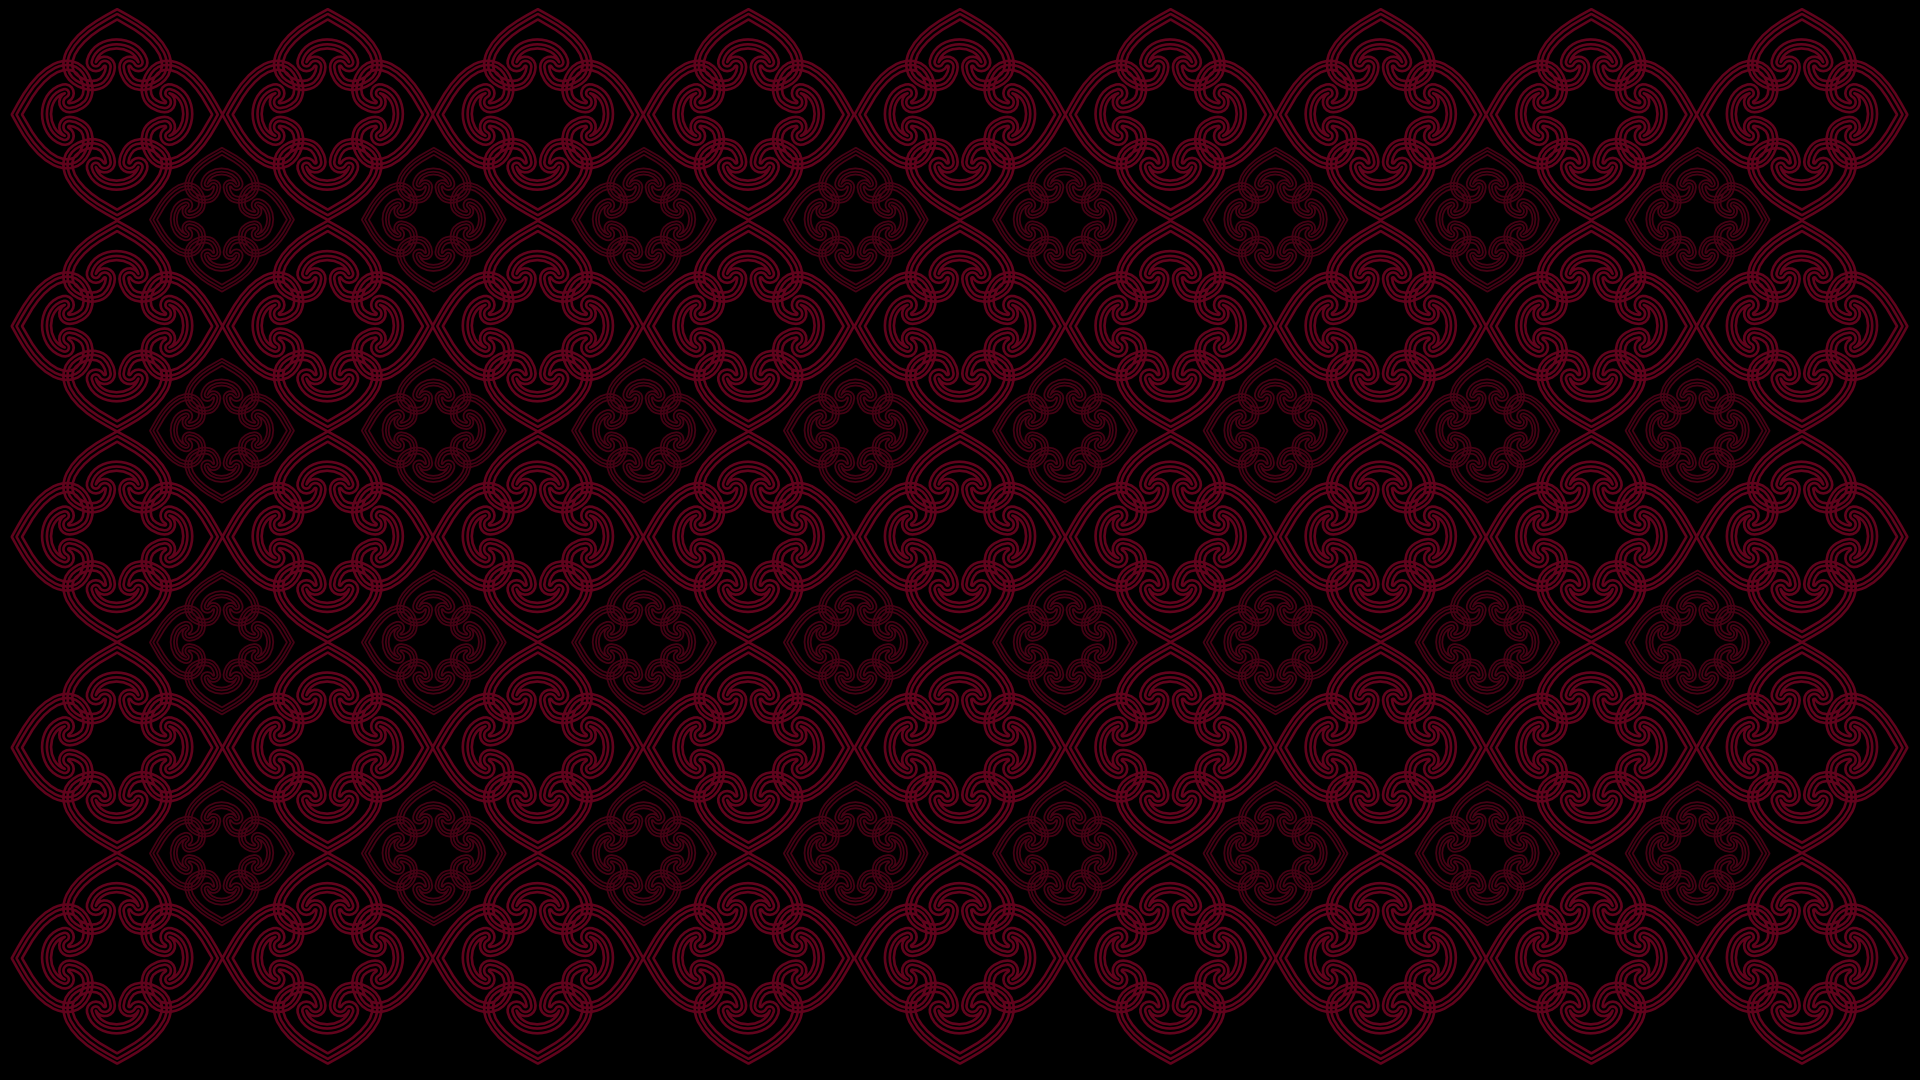 Black And Red Patterned Wallpaper